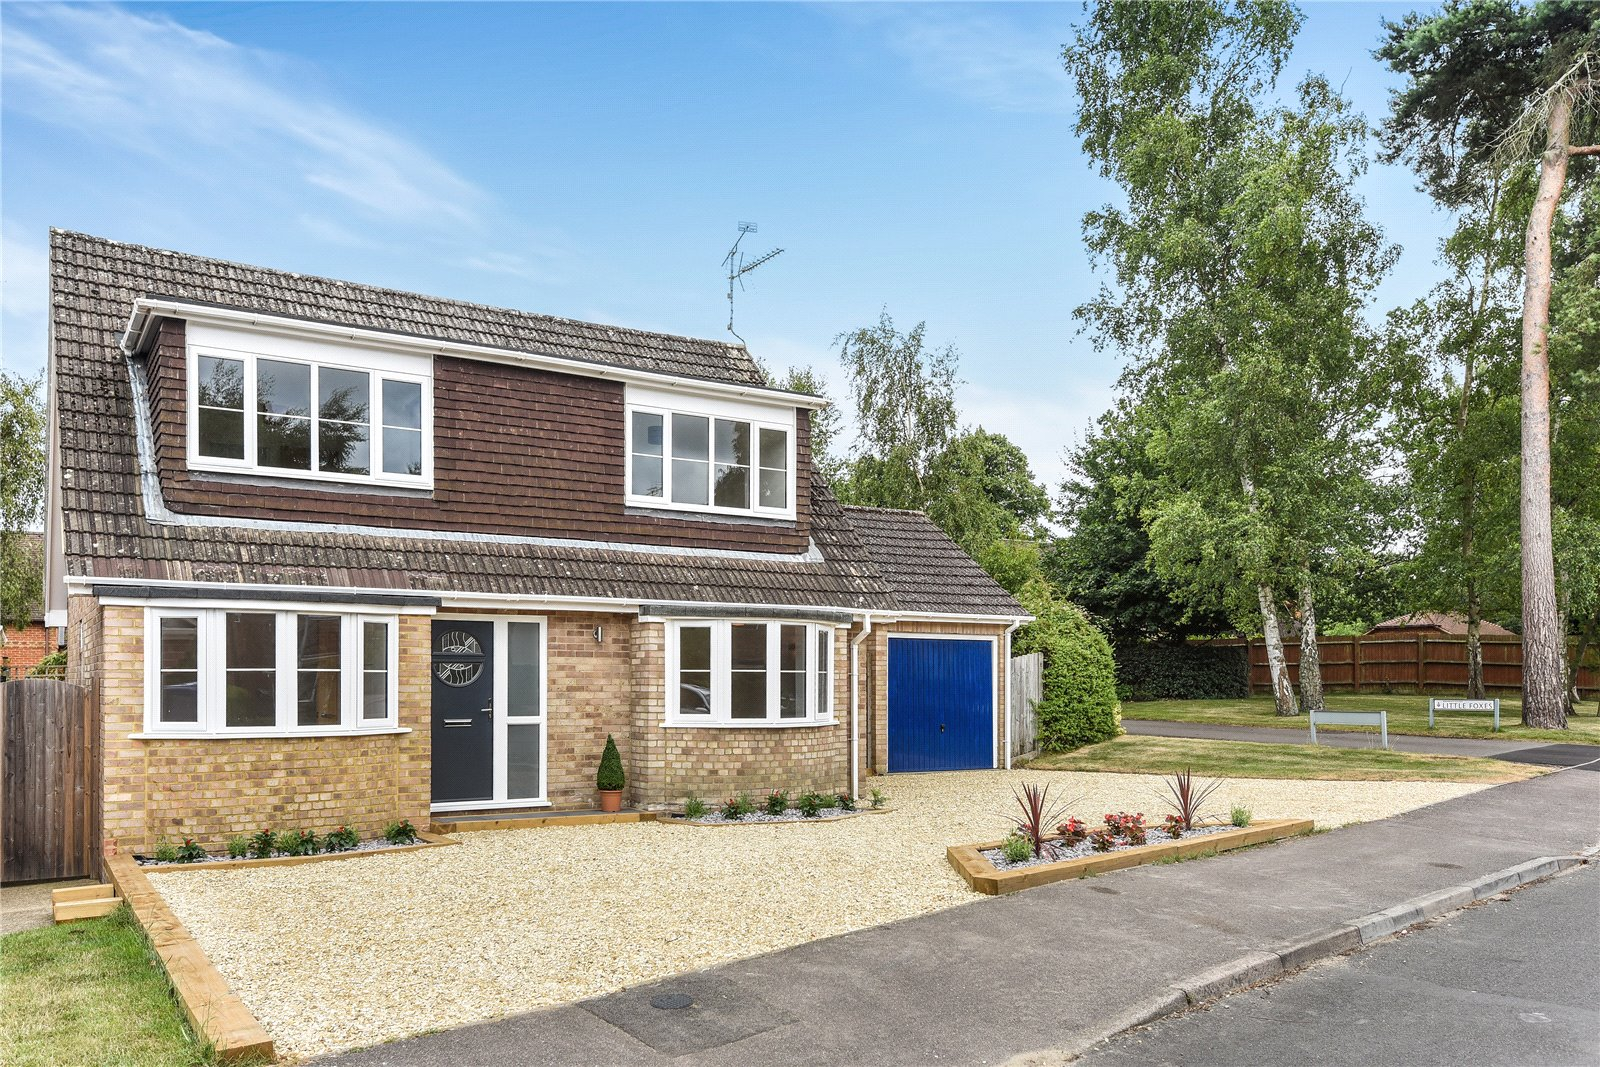 3 Bedrooms Detached House for sale in Foxcote, Finchampstead, Wokingham, Berkshire, RG40